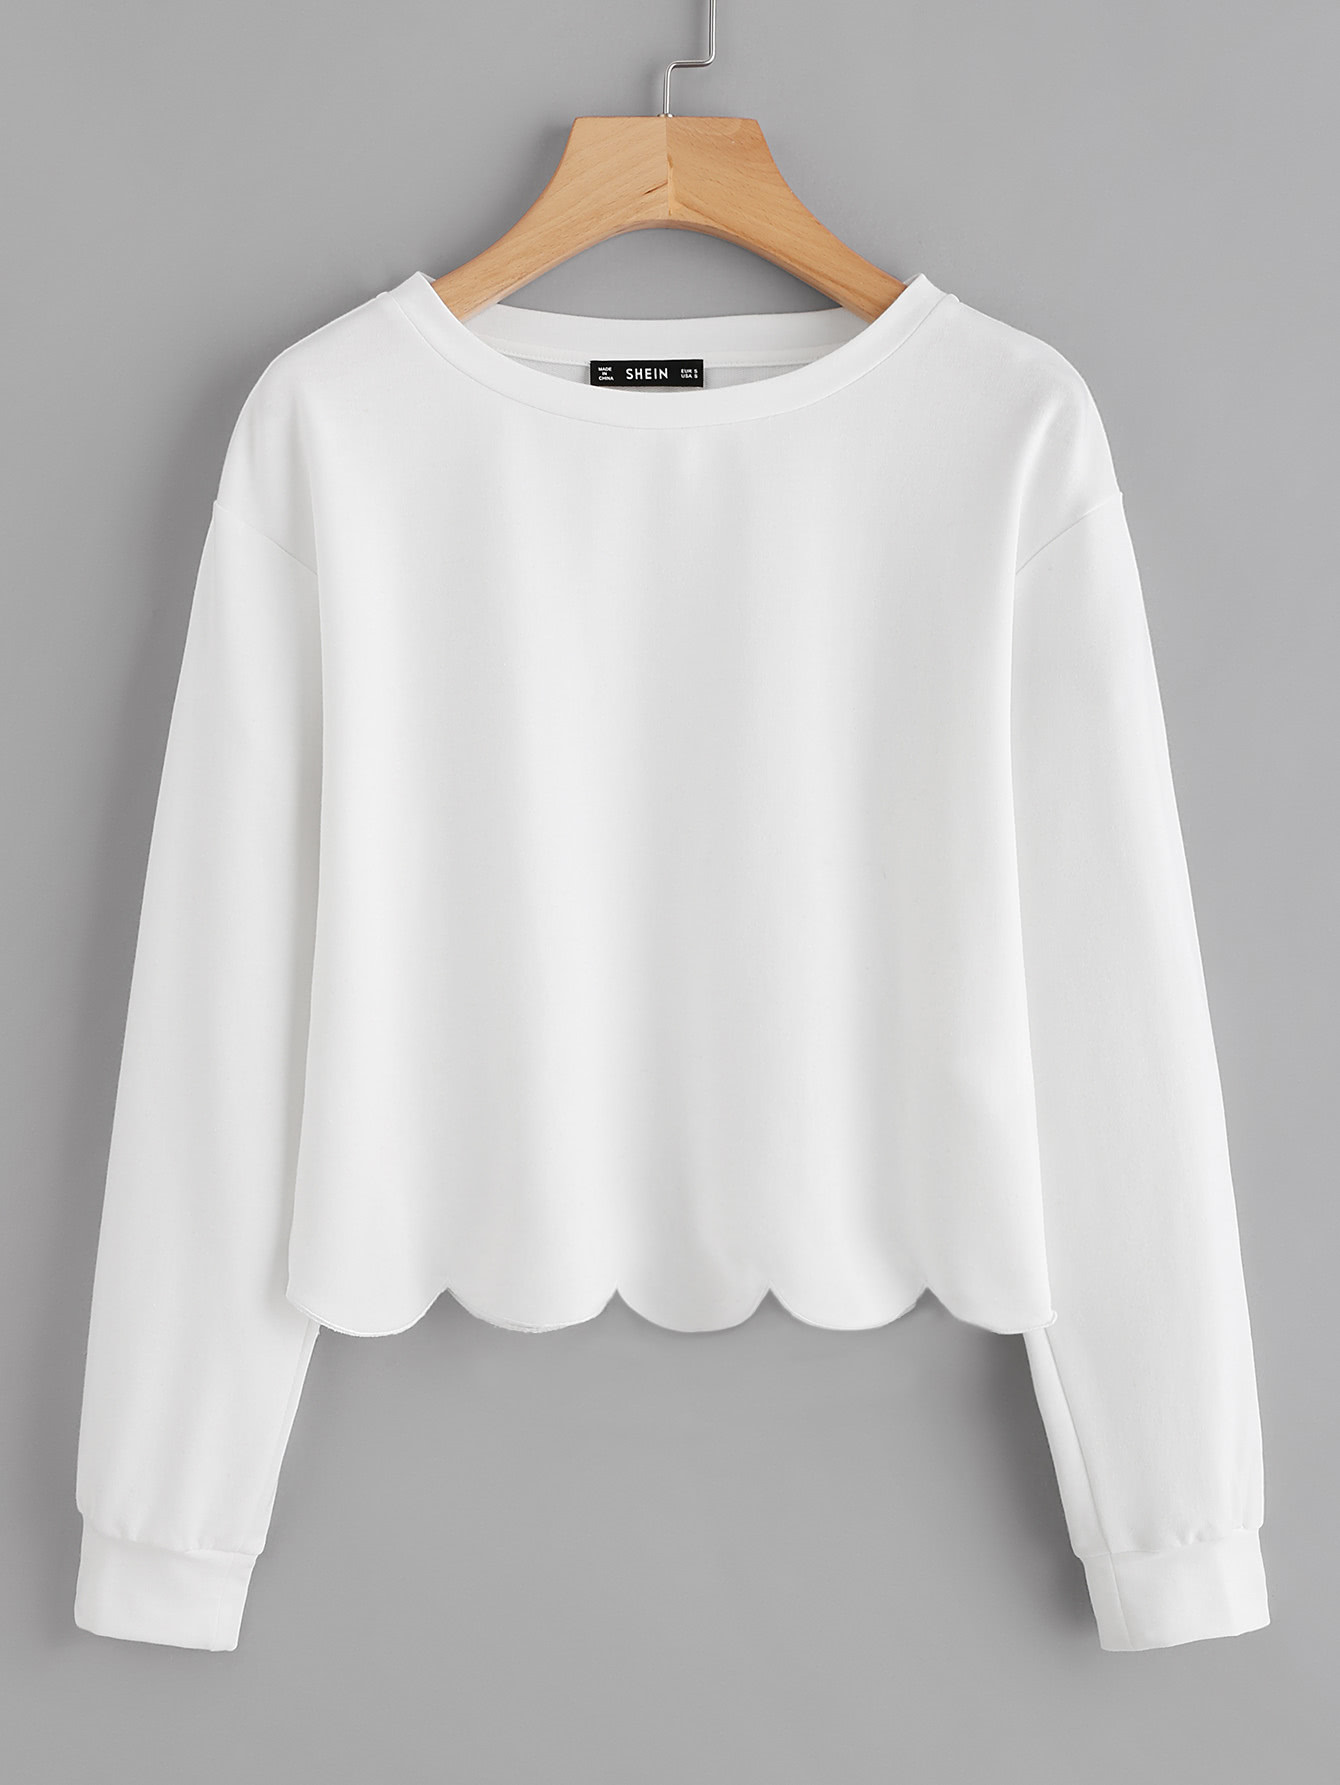 Drop Shoulder Scallop Hem Sweatshirt drop shoulder frill hem batwing sweatshirt